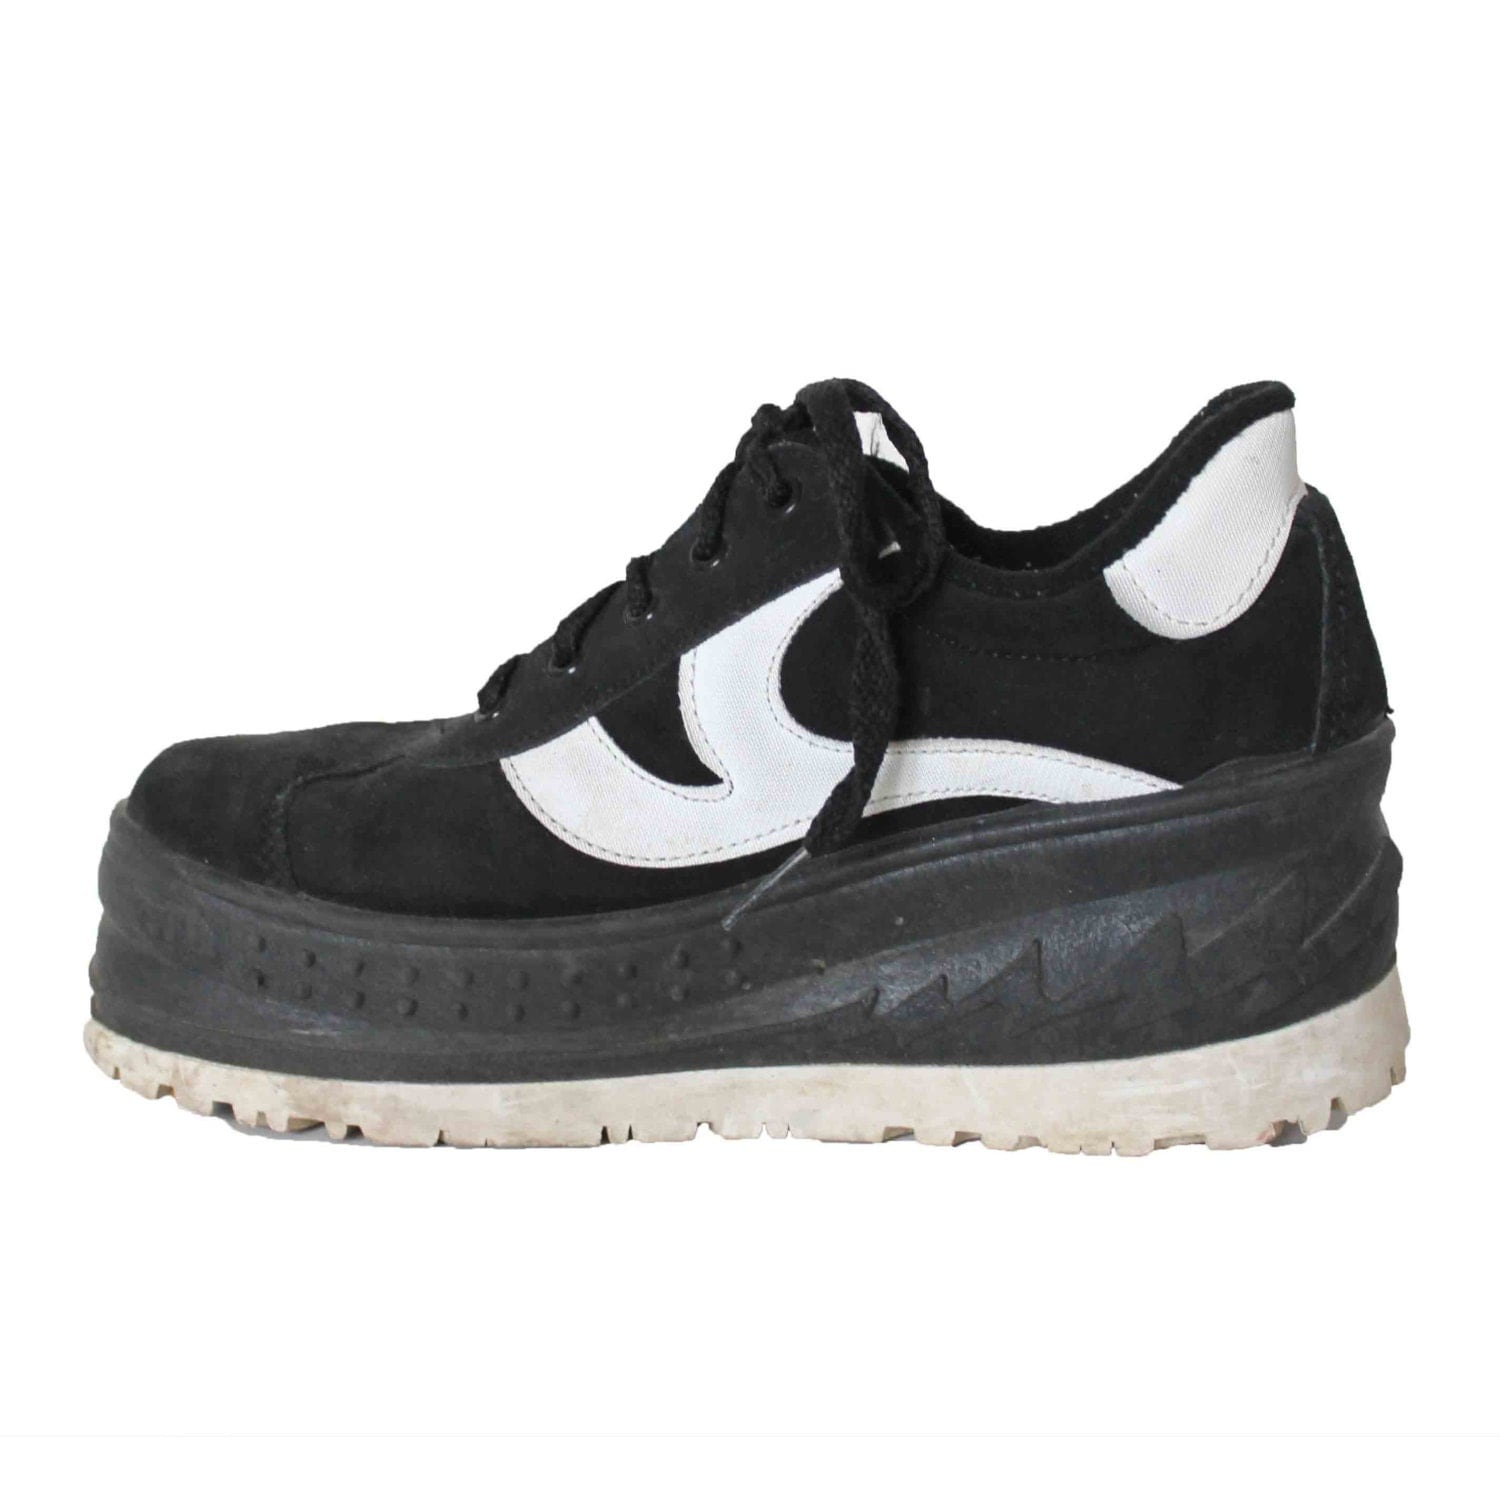 90s black white platform sneakers shoes tennis by